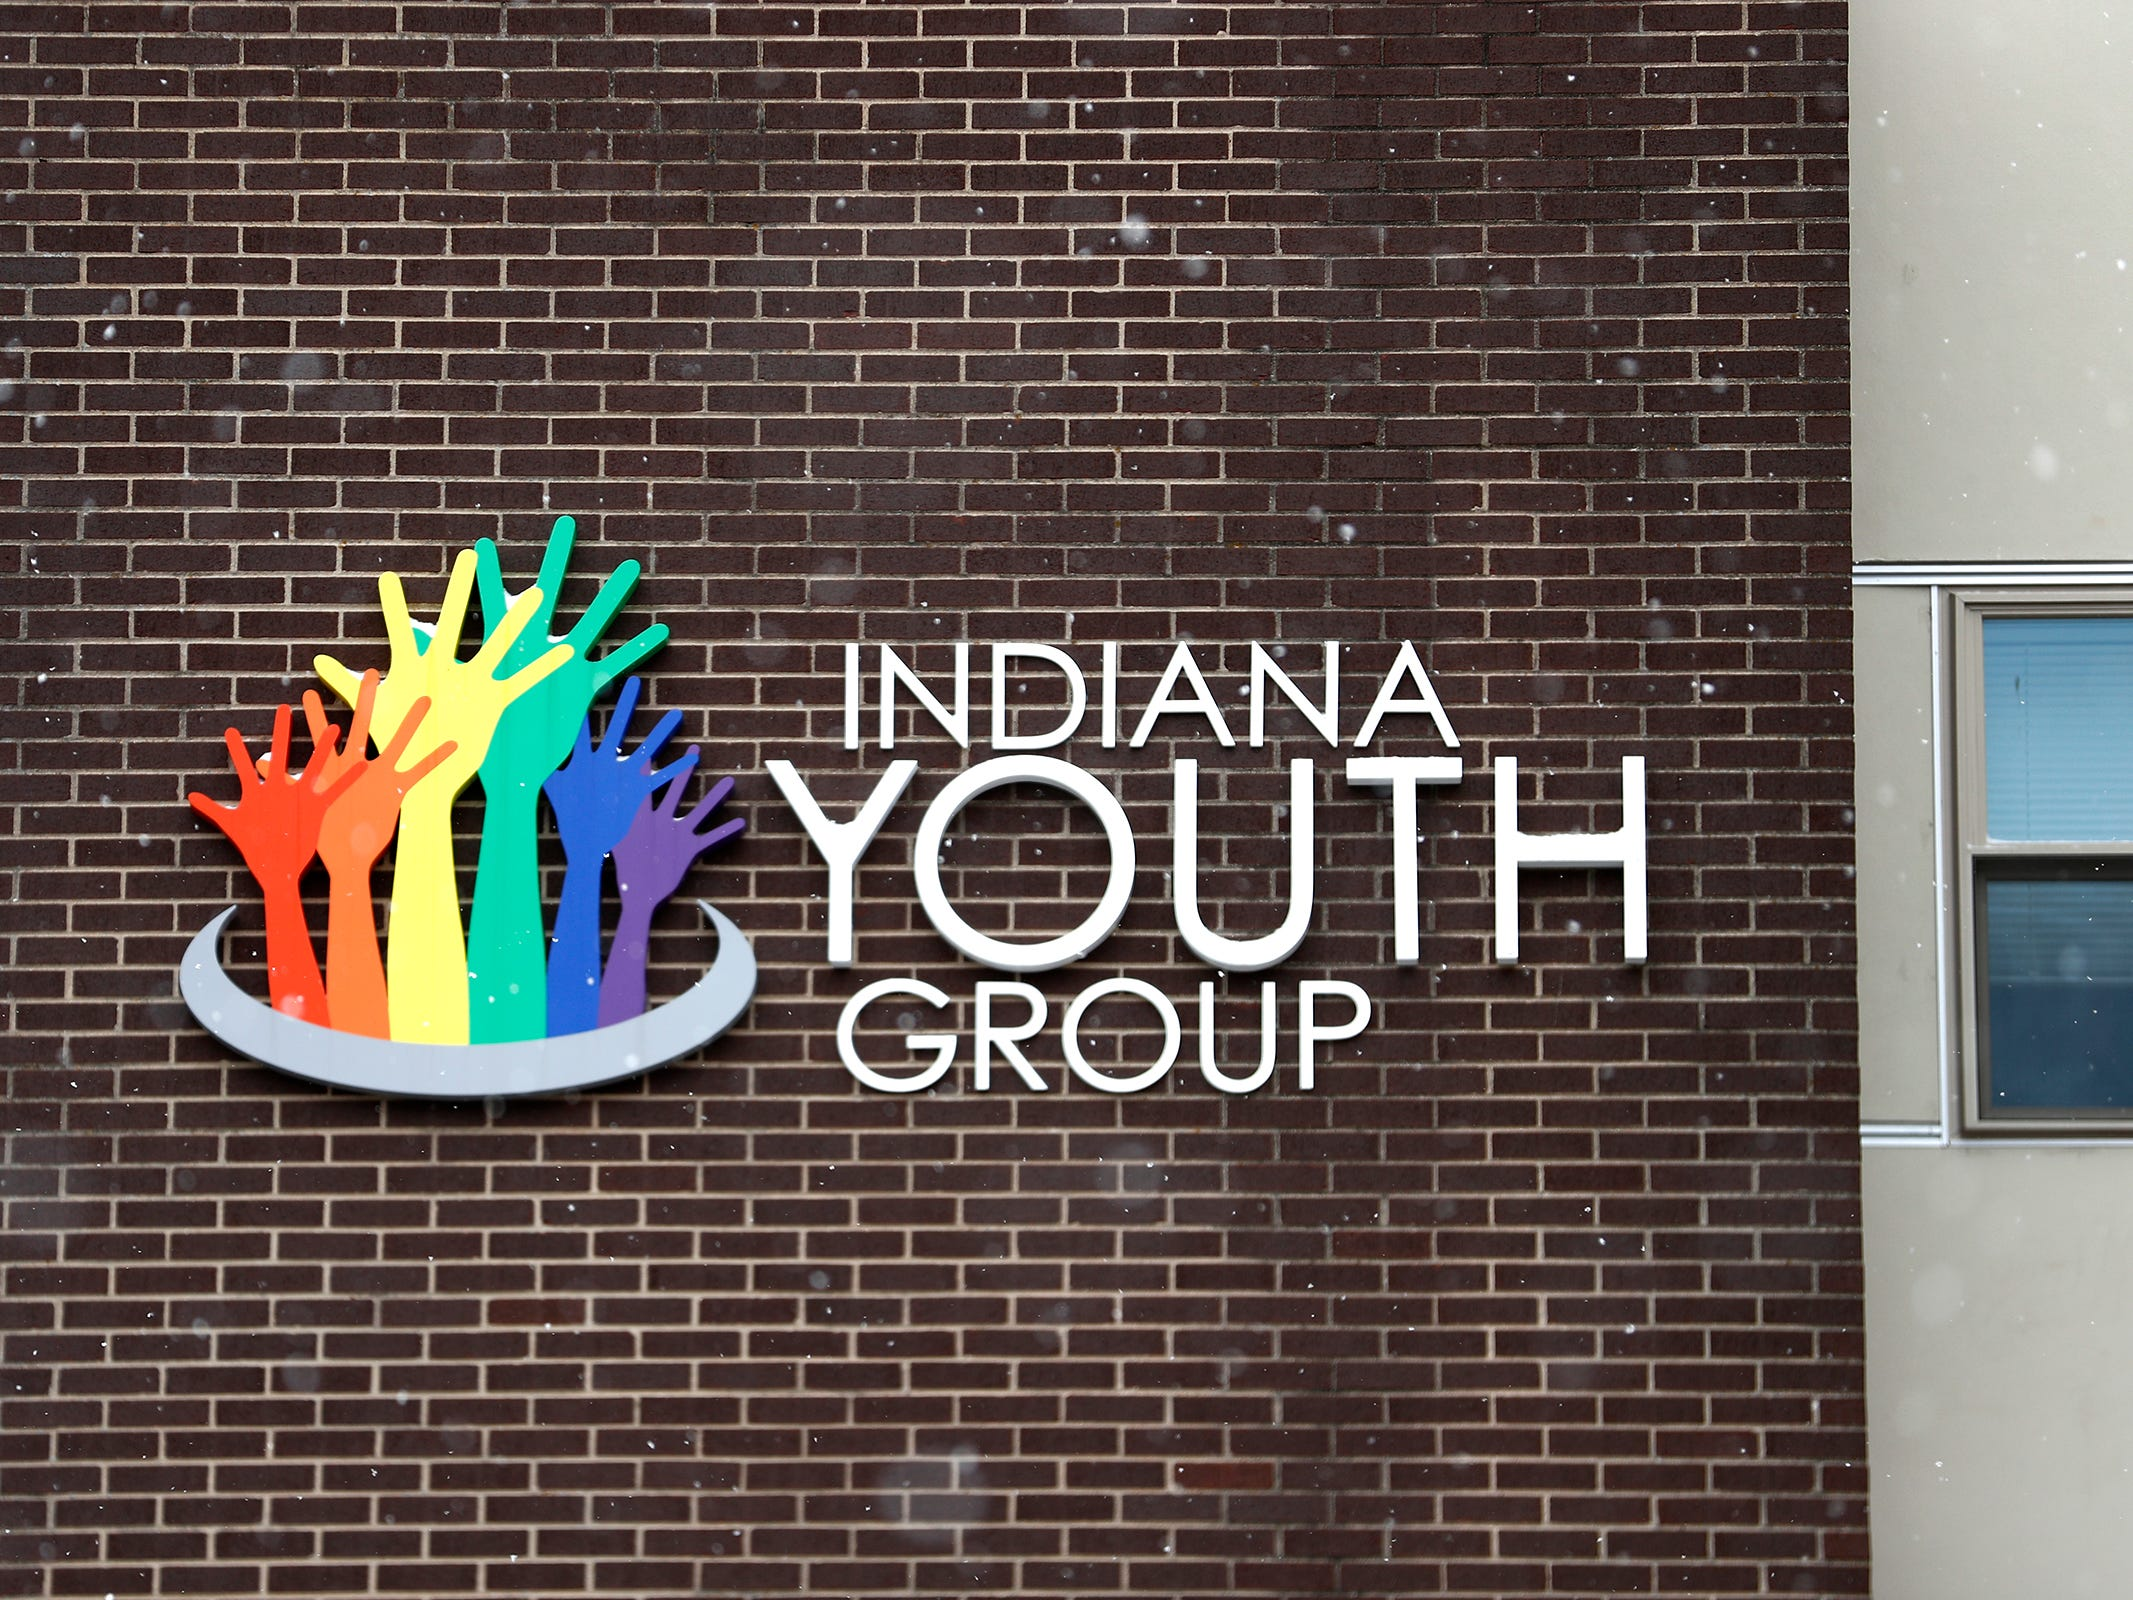 Indiana Youth Group is at 3733 N. Meridian St., Tuesday, Nov. 27, 2018.  The organization offers a safe drop-in center for LGBTQ+ youth, ages 12-20, and their straight ally friends, in the Indianapolis area.  Activities, tutoring, food and clothes pantries are included in the center.